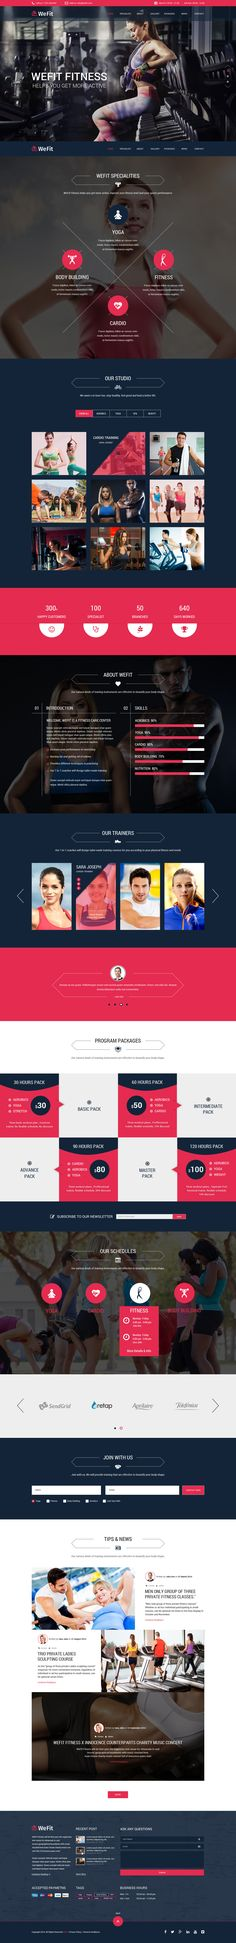 35 Fitness Website Designs Inspirations - Tap the pin if you love super heroes too! Cause guess what? you will LOVE these super hero fitness shirts! Web Layout, Layout Design, Cv Web, Fitness Websites, Sports Website, Responsive Web Design, Fitness Design, Interface Design, User Interface